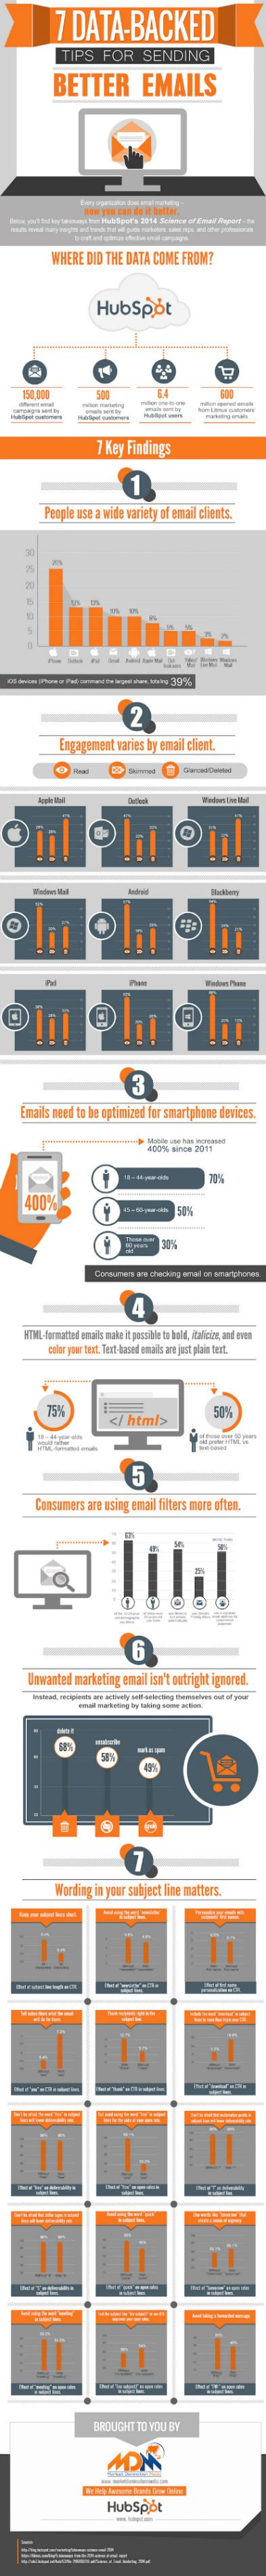 Infografia datos emails marketing